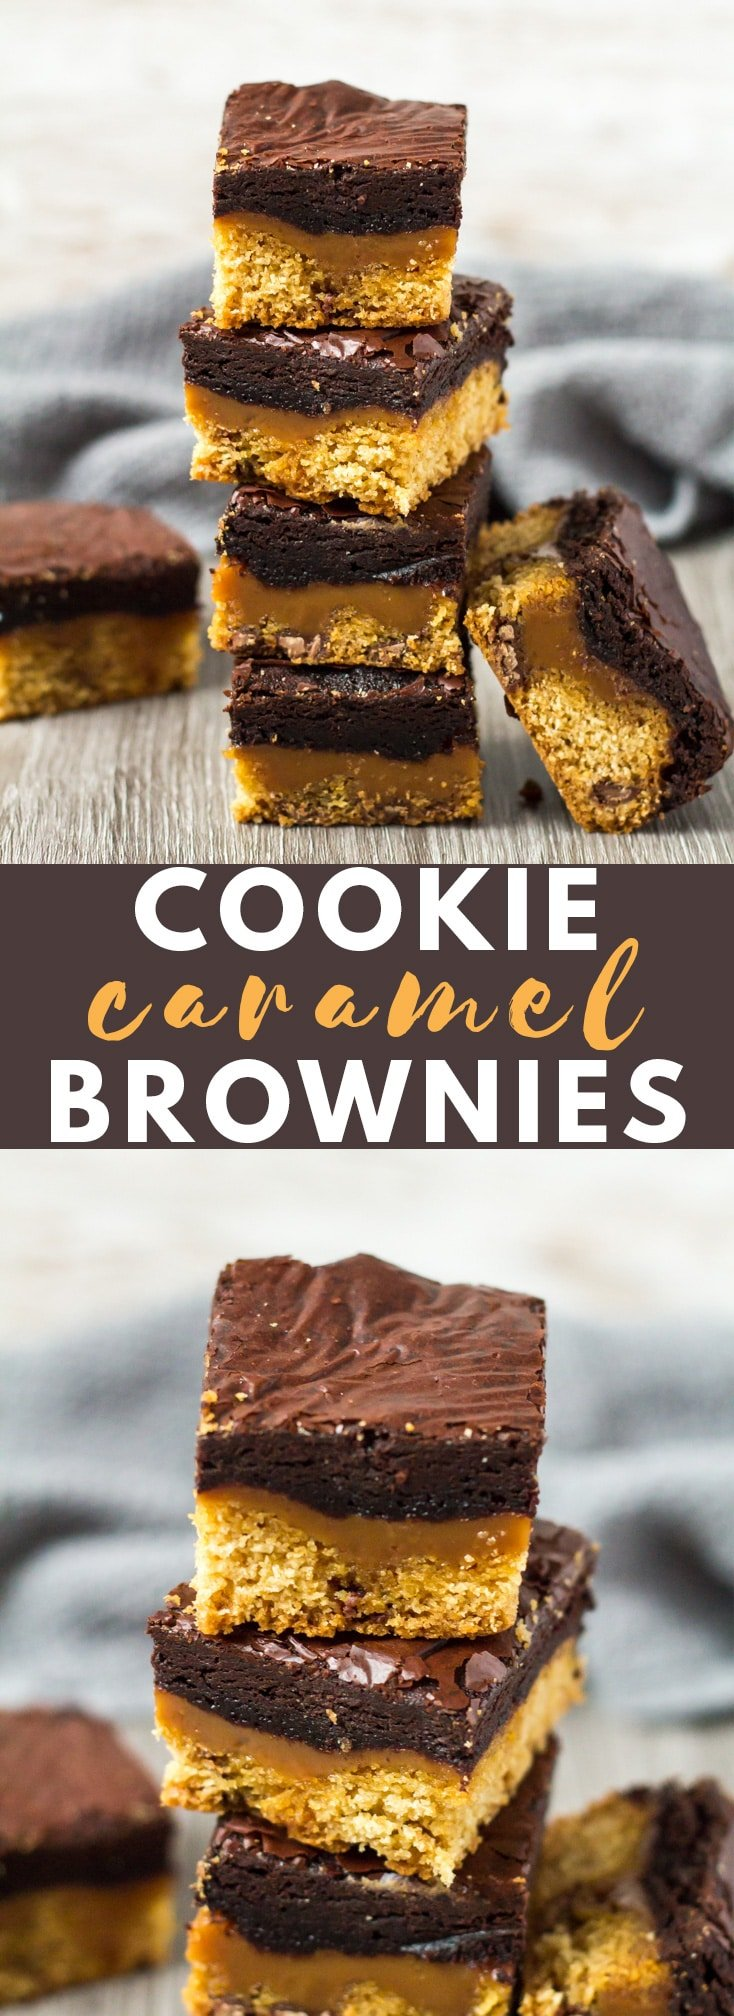 Chocolate Chip Cookie Caramel Brownies